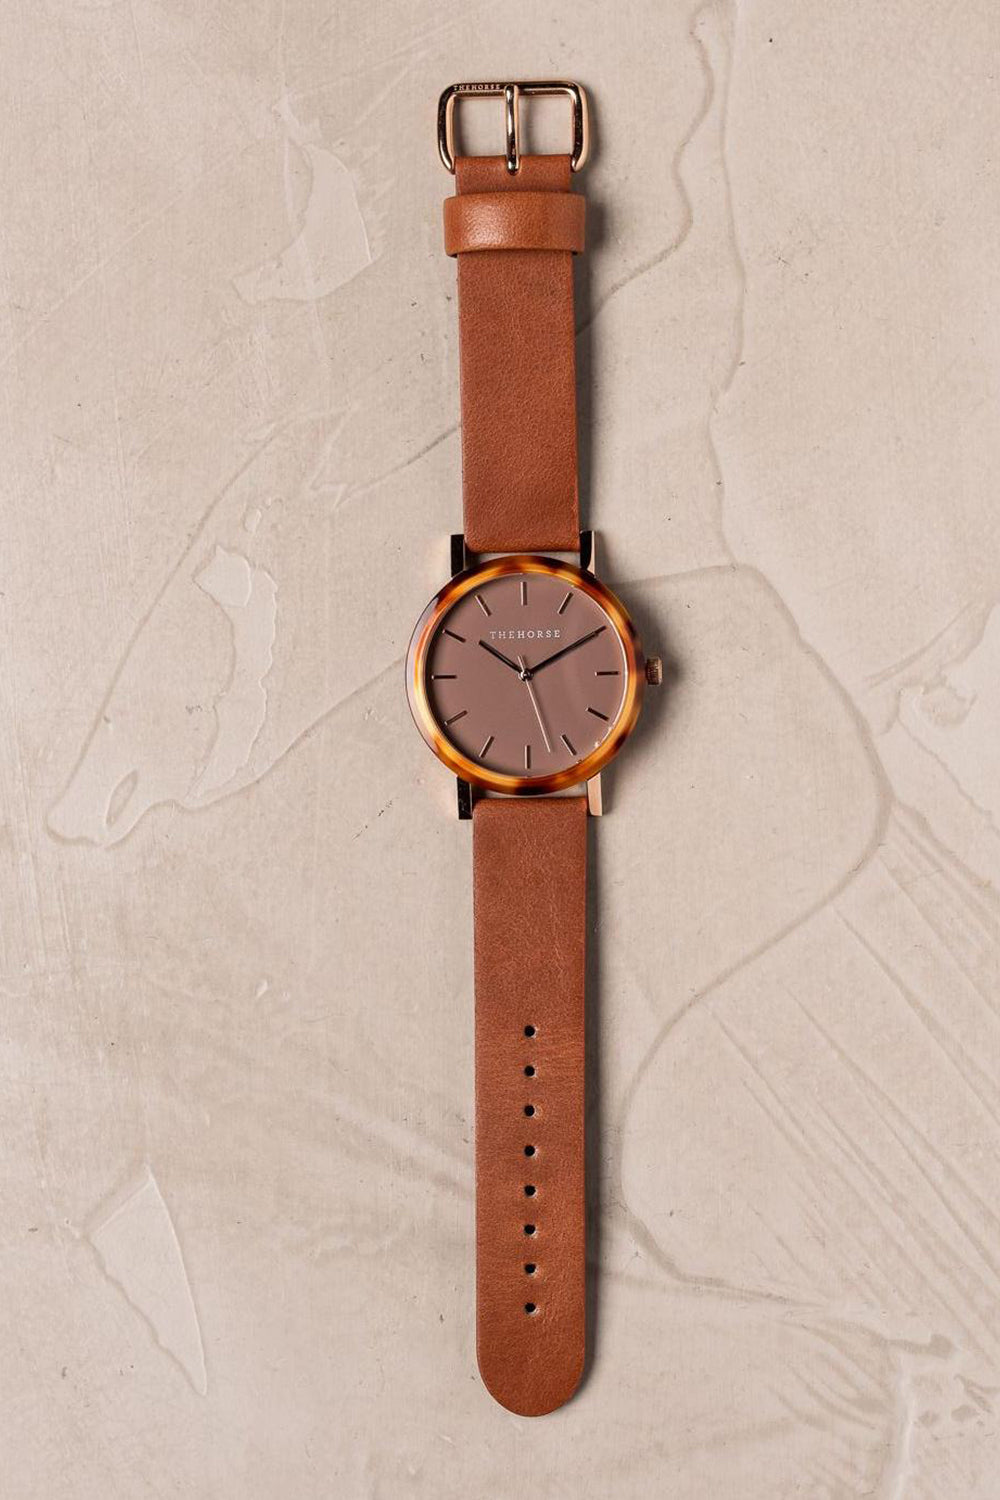 CARAMEL TREACLE CASE - DARK CARAMEL DIAL - ROSE GOLD INDEXING - TAN LEATHER